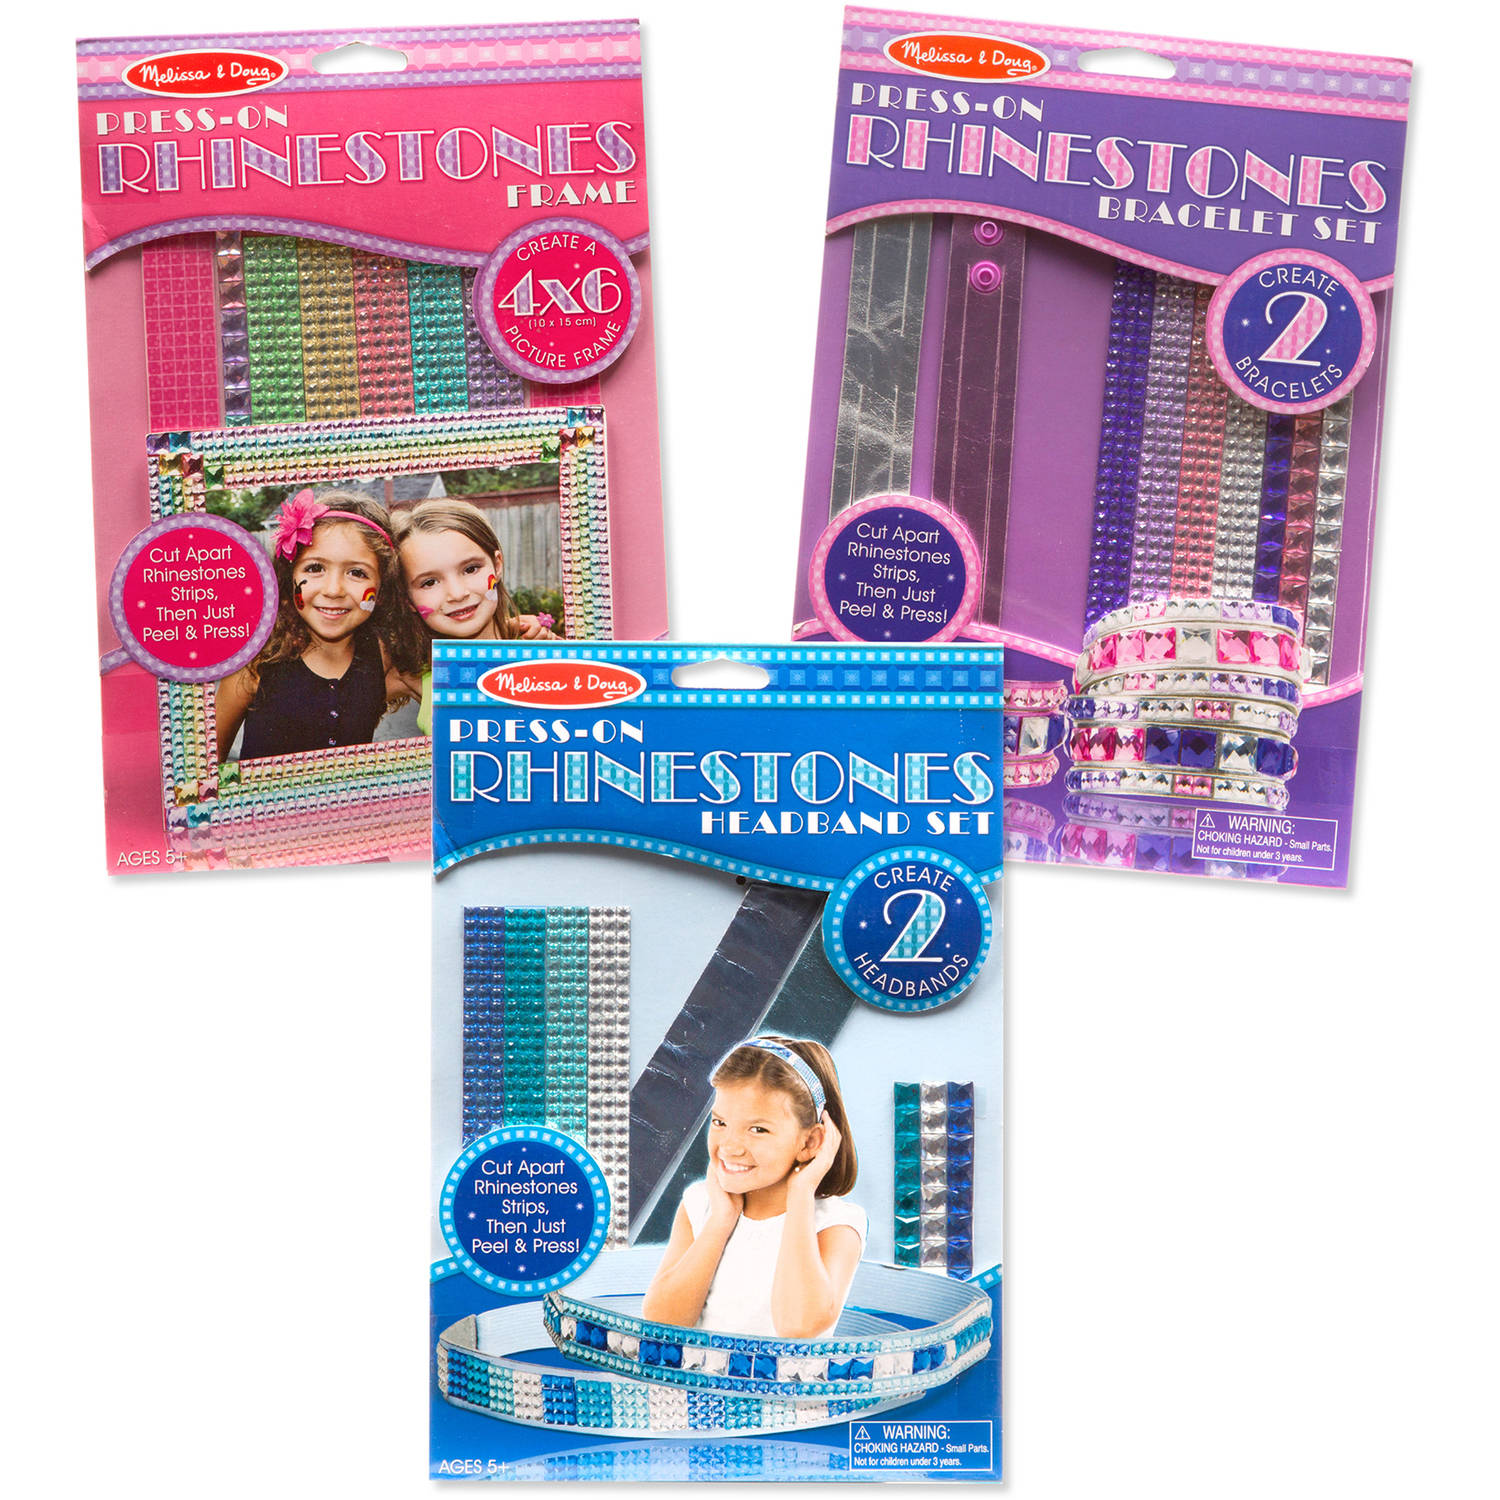 Melissa and Doug Press-on Jewels Rhinestone Picture Frame/Bracelets/Headbands Kit